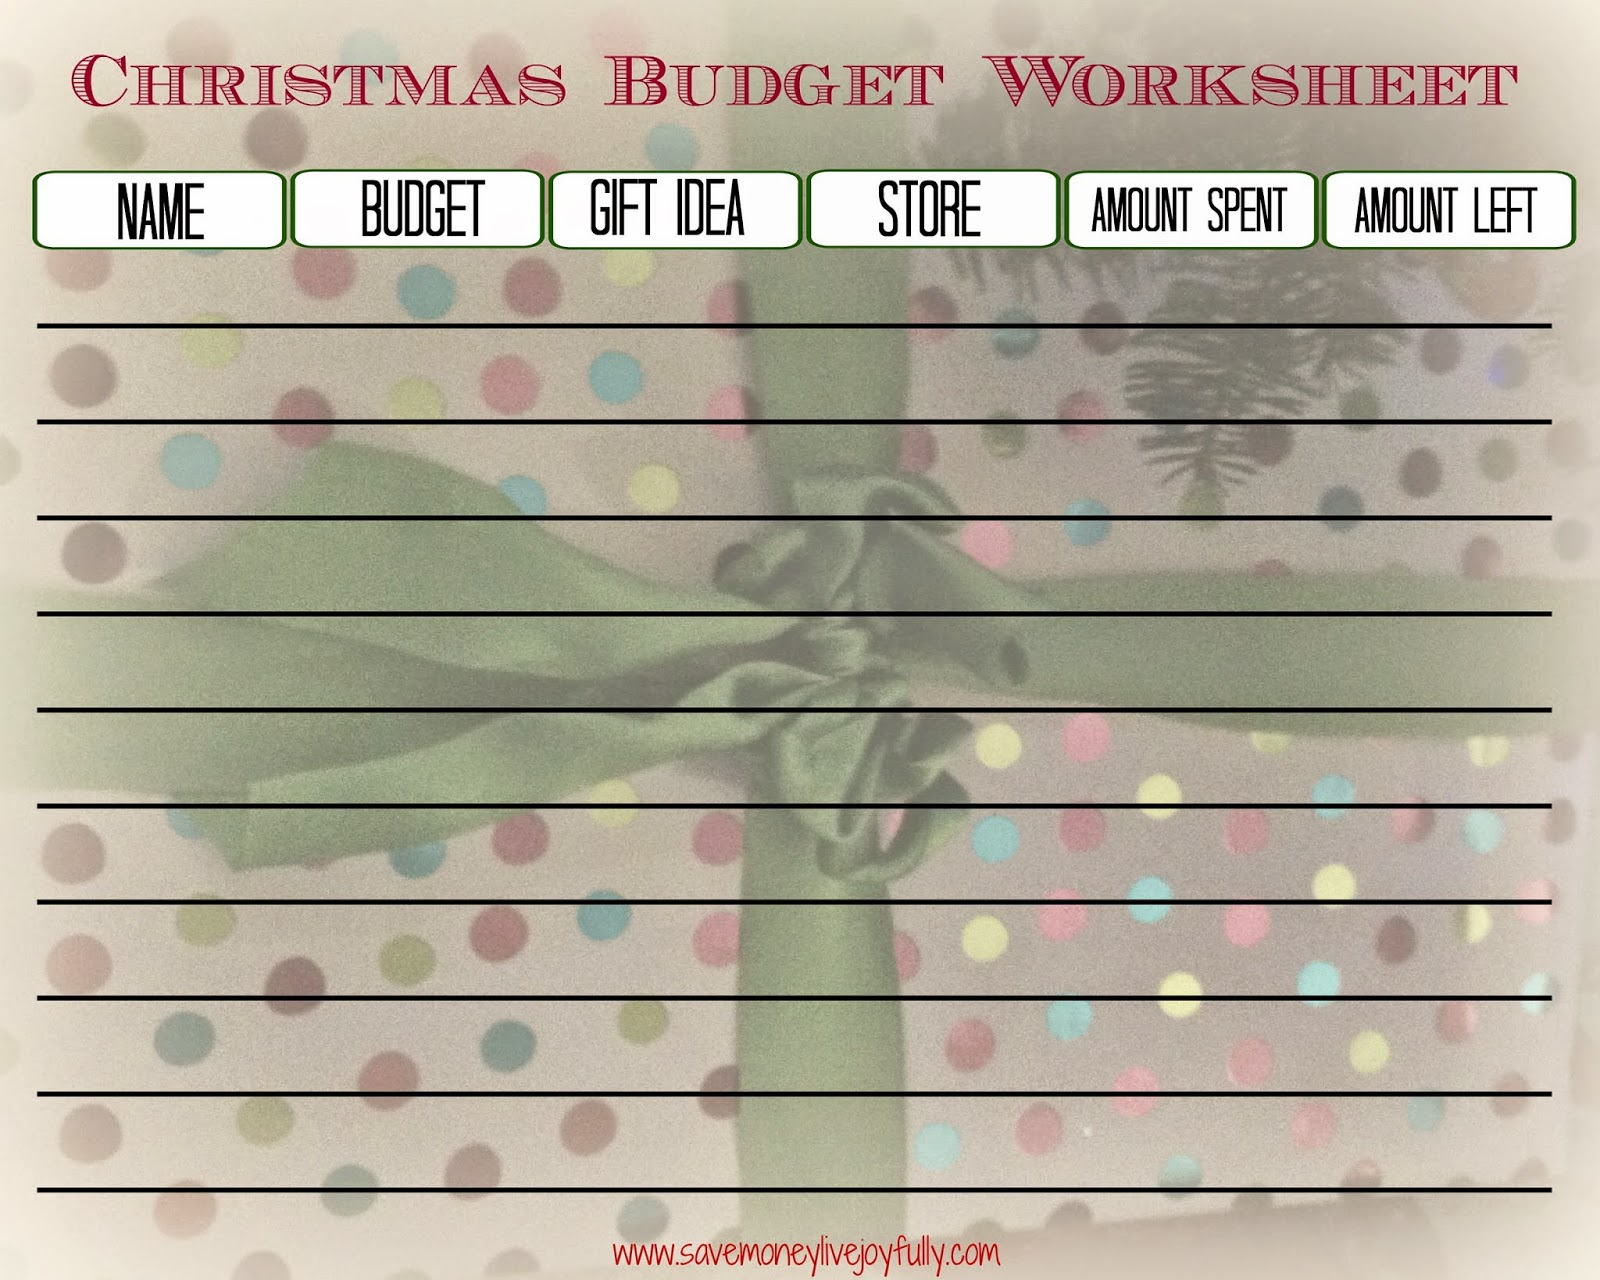 Save Money Live Joyfully Free Christmas Budget Worksheet Printable